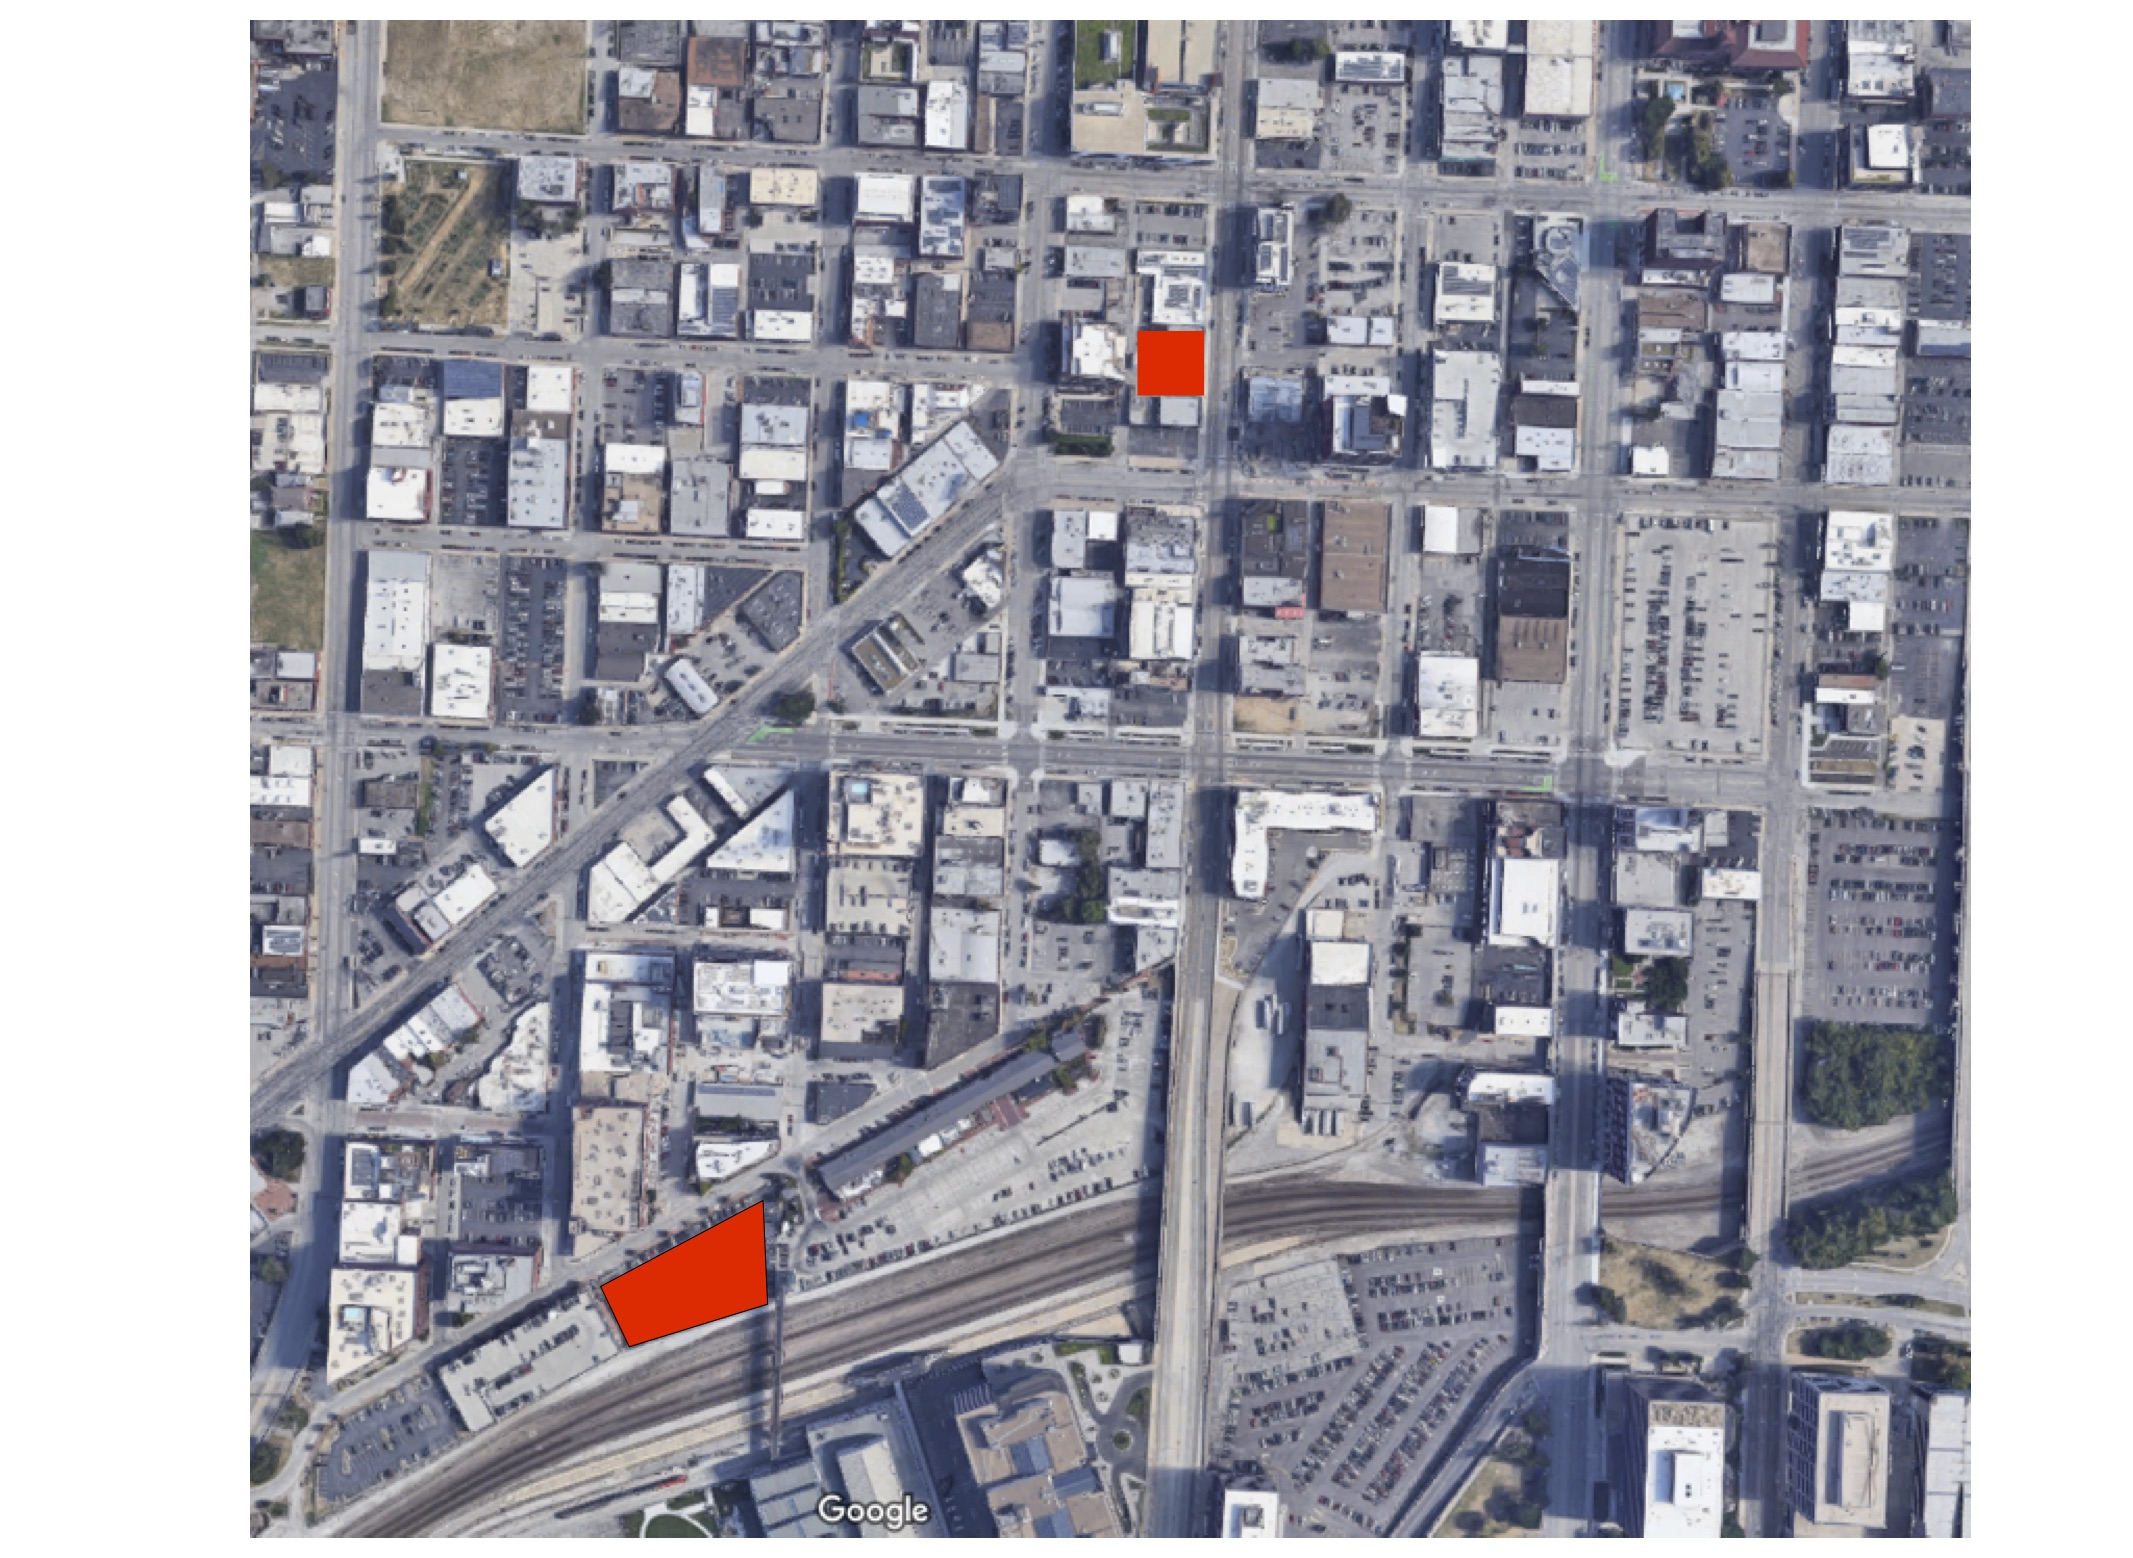 Two recent proposed developments highlighted in red, in the Crossroads neighborhood of Kansas City